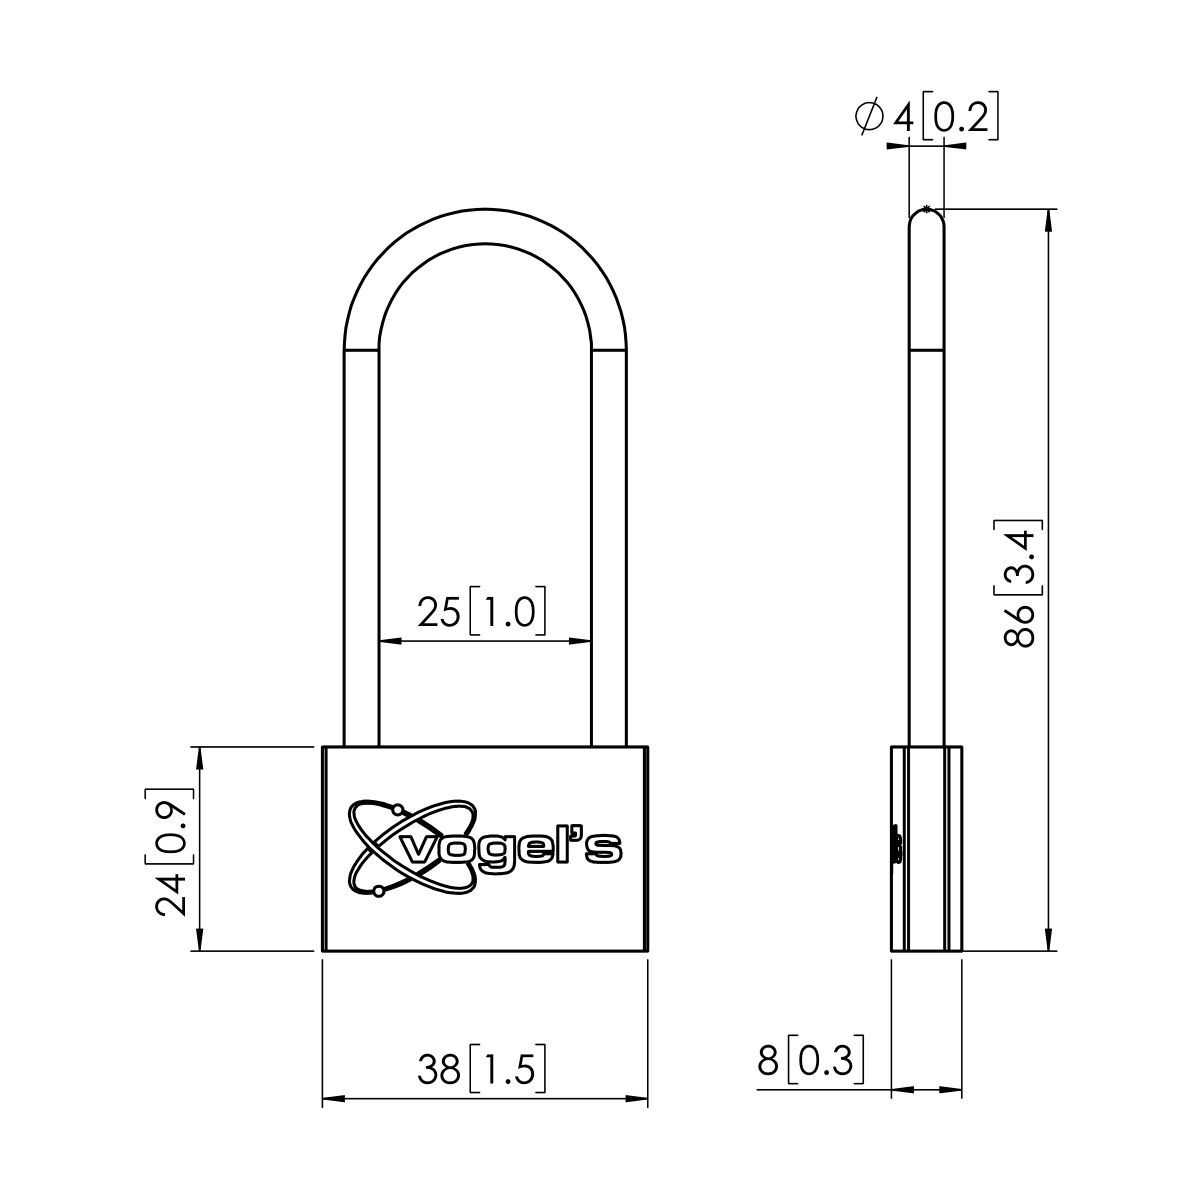 Vogel's PFA 9109 Padlock for PFS - Dimensions